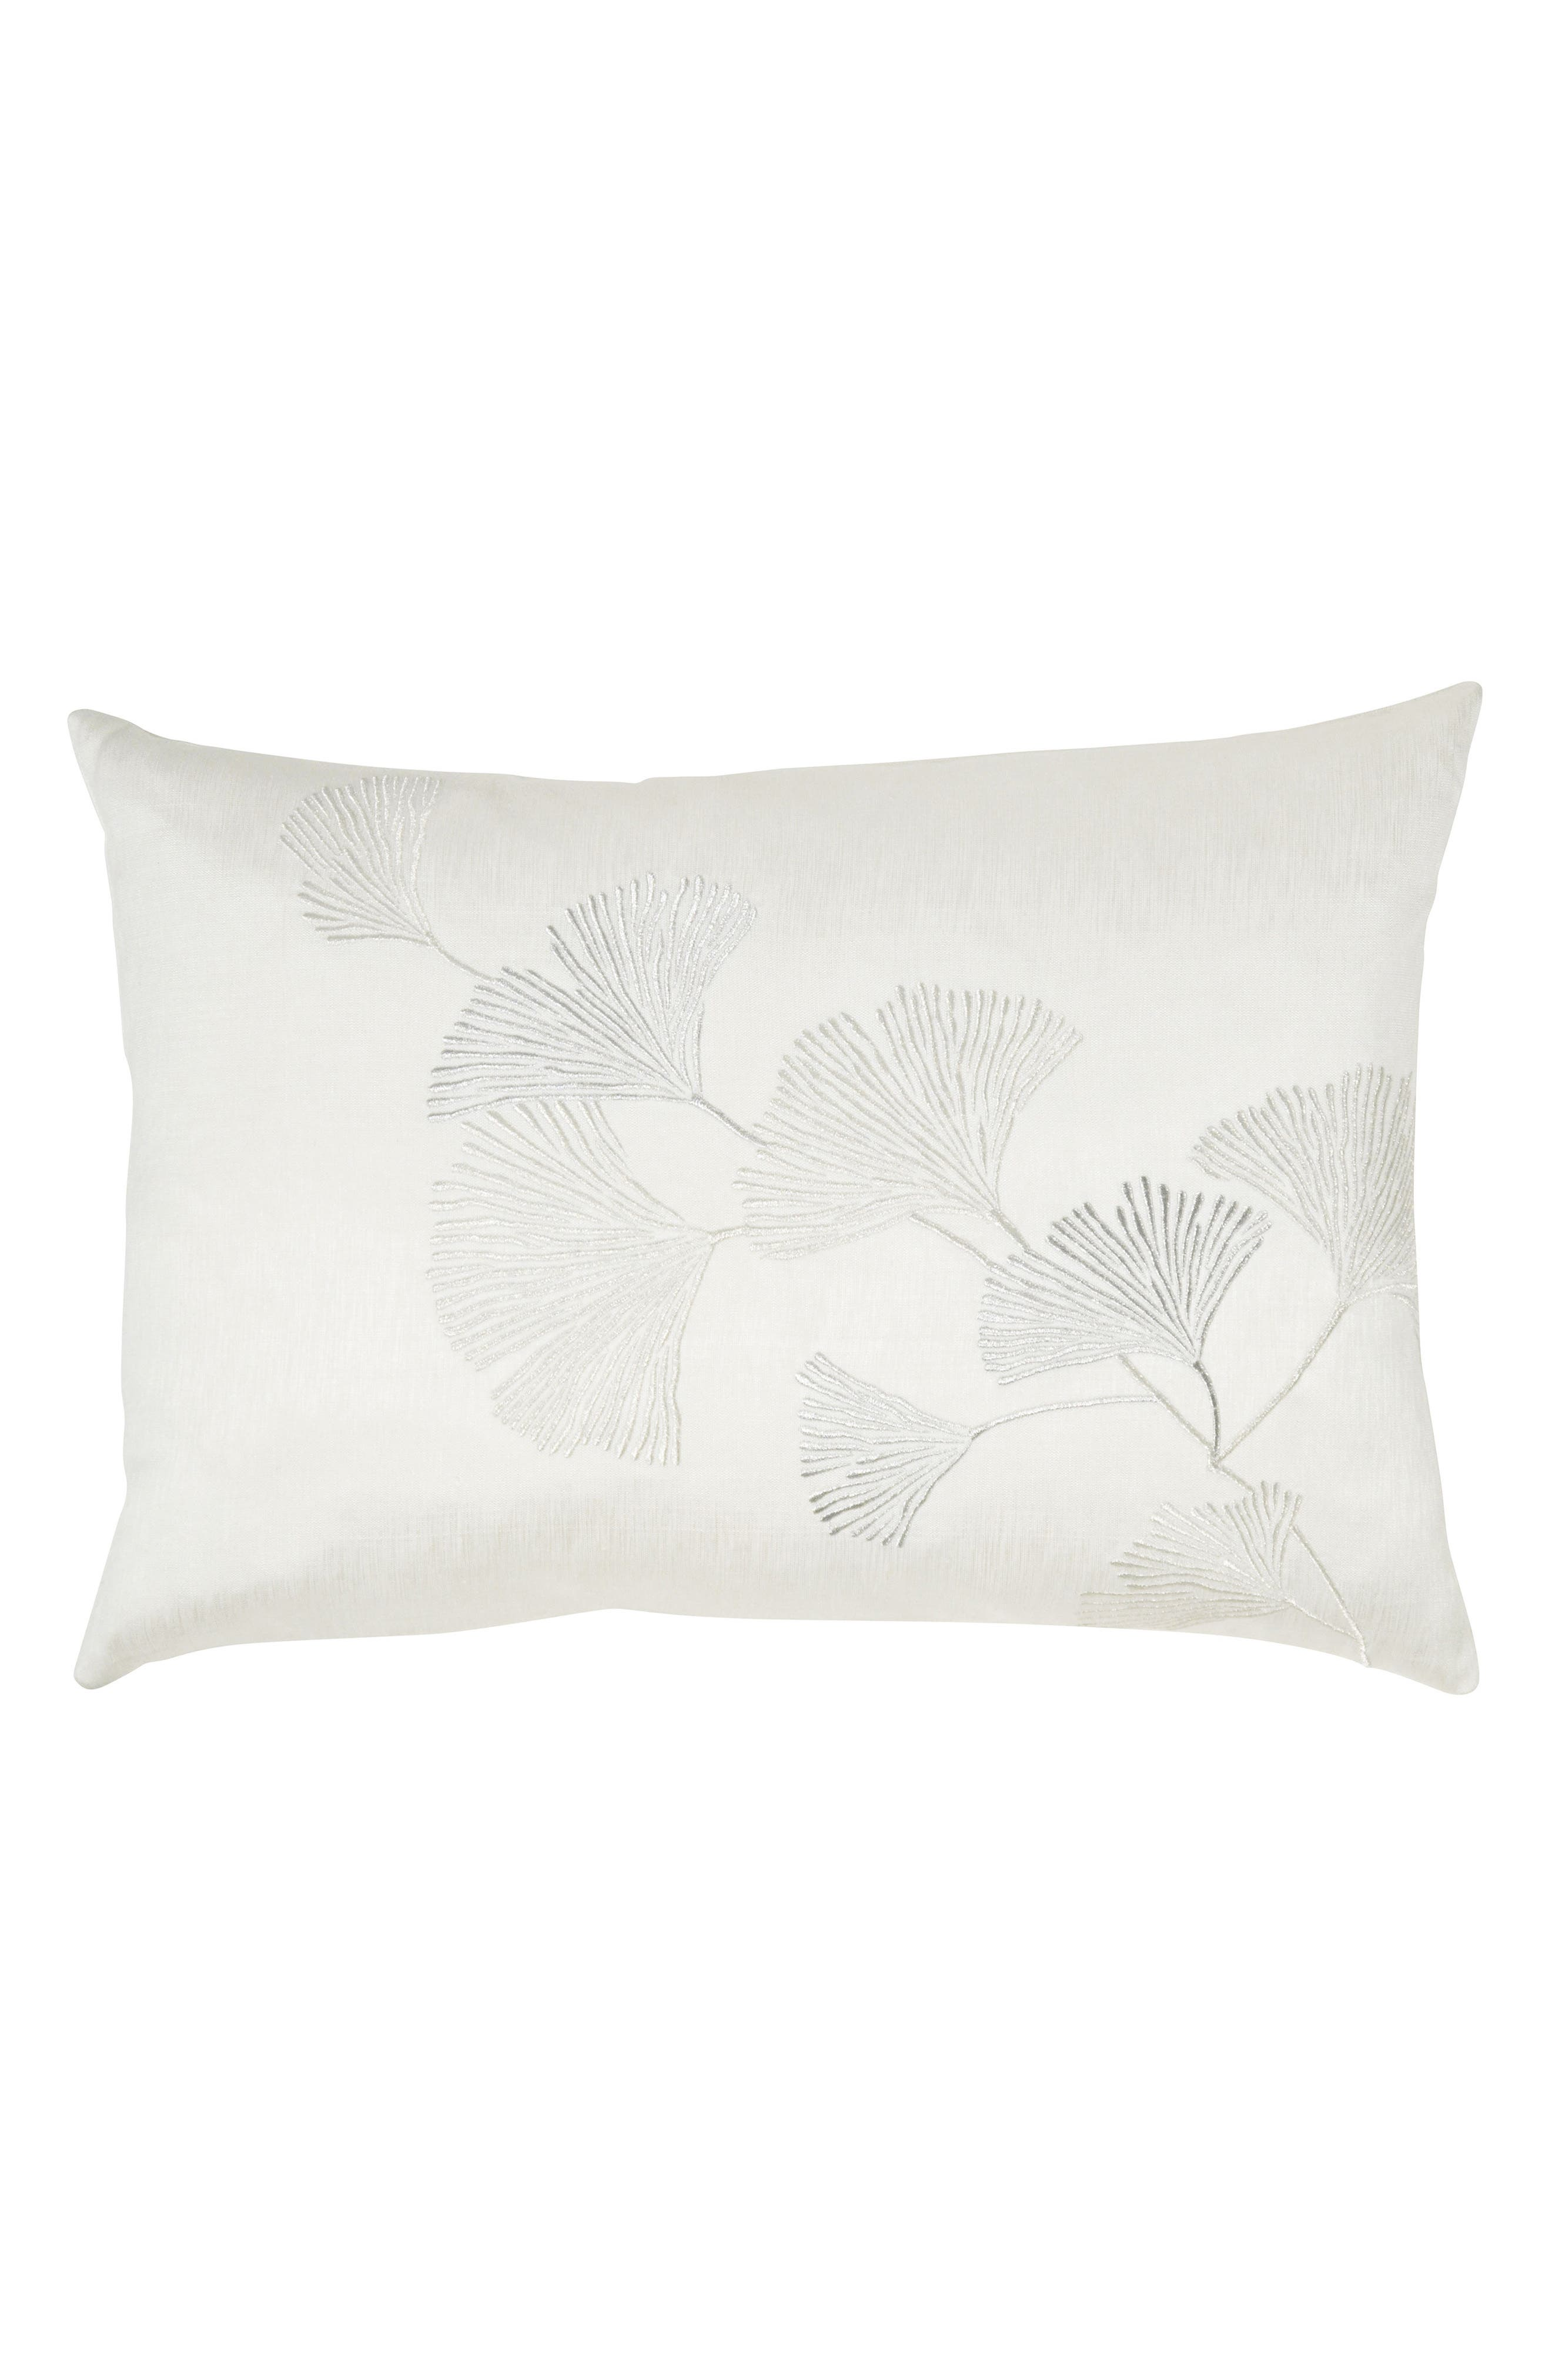 Ginkgo Leaf Embroidered Accent Pillow,                         Main,                         color, IVORY